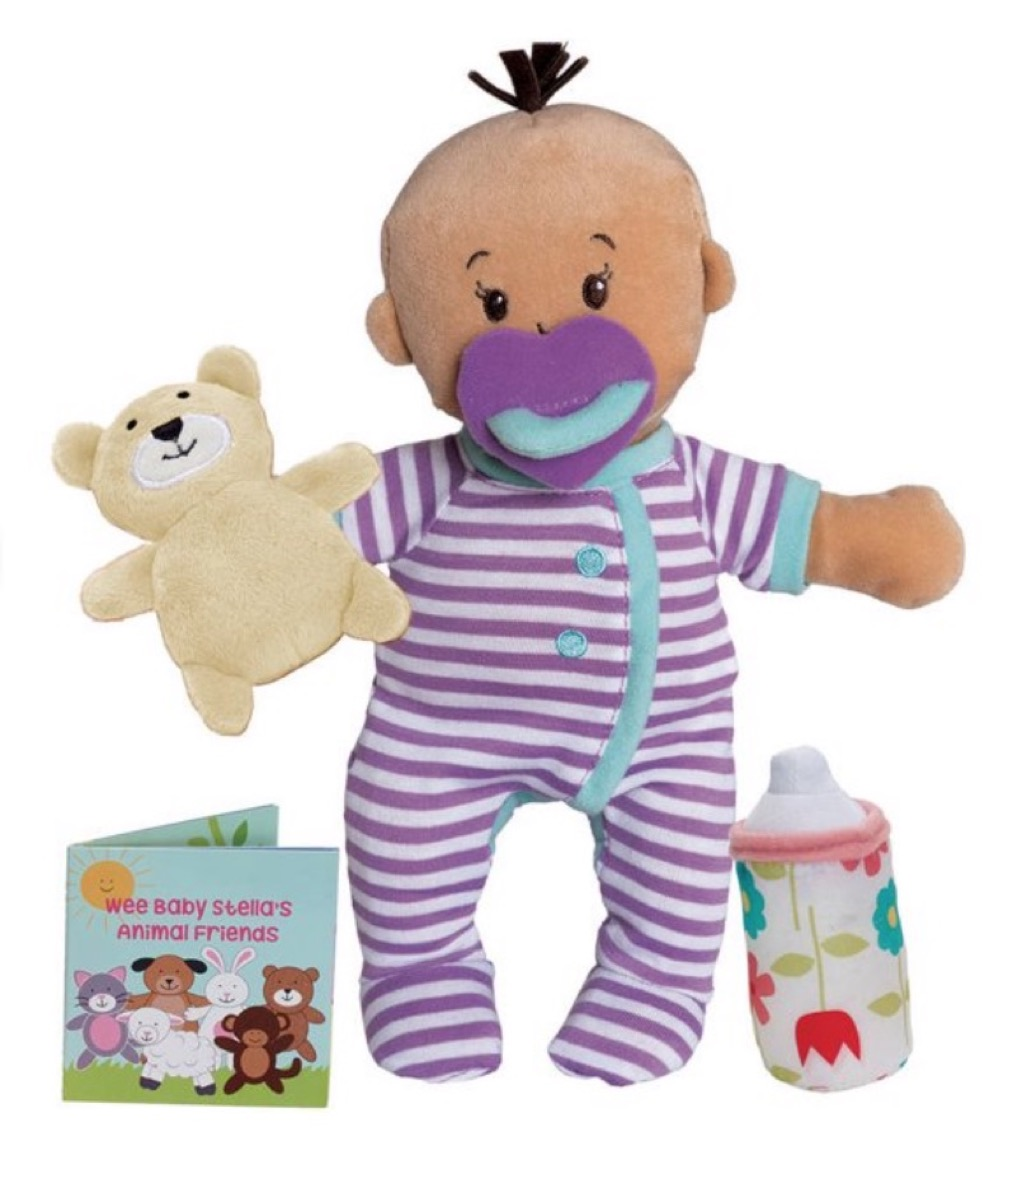 soft baby doll and accessories